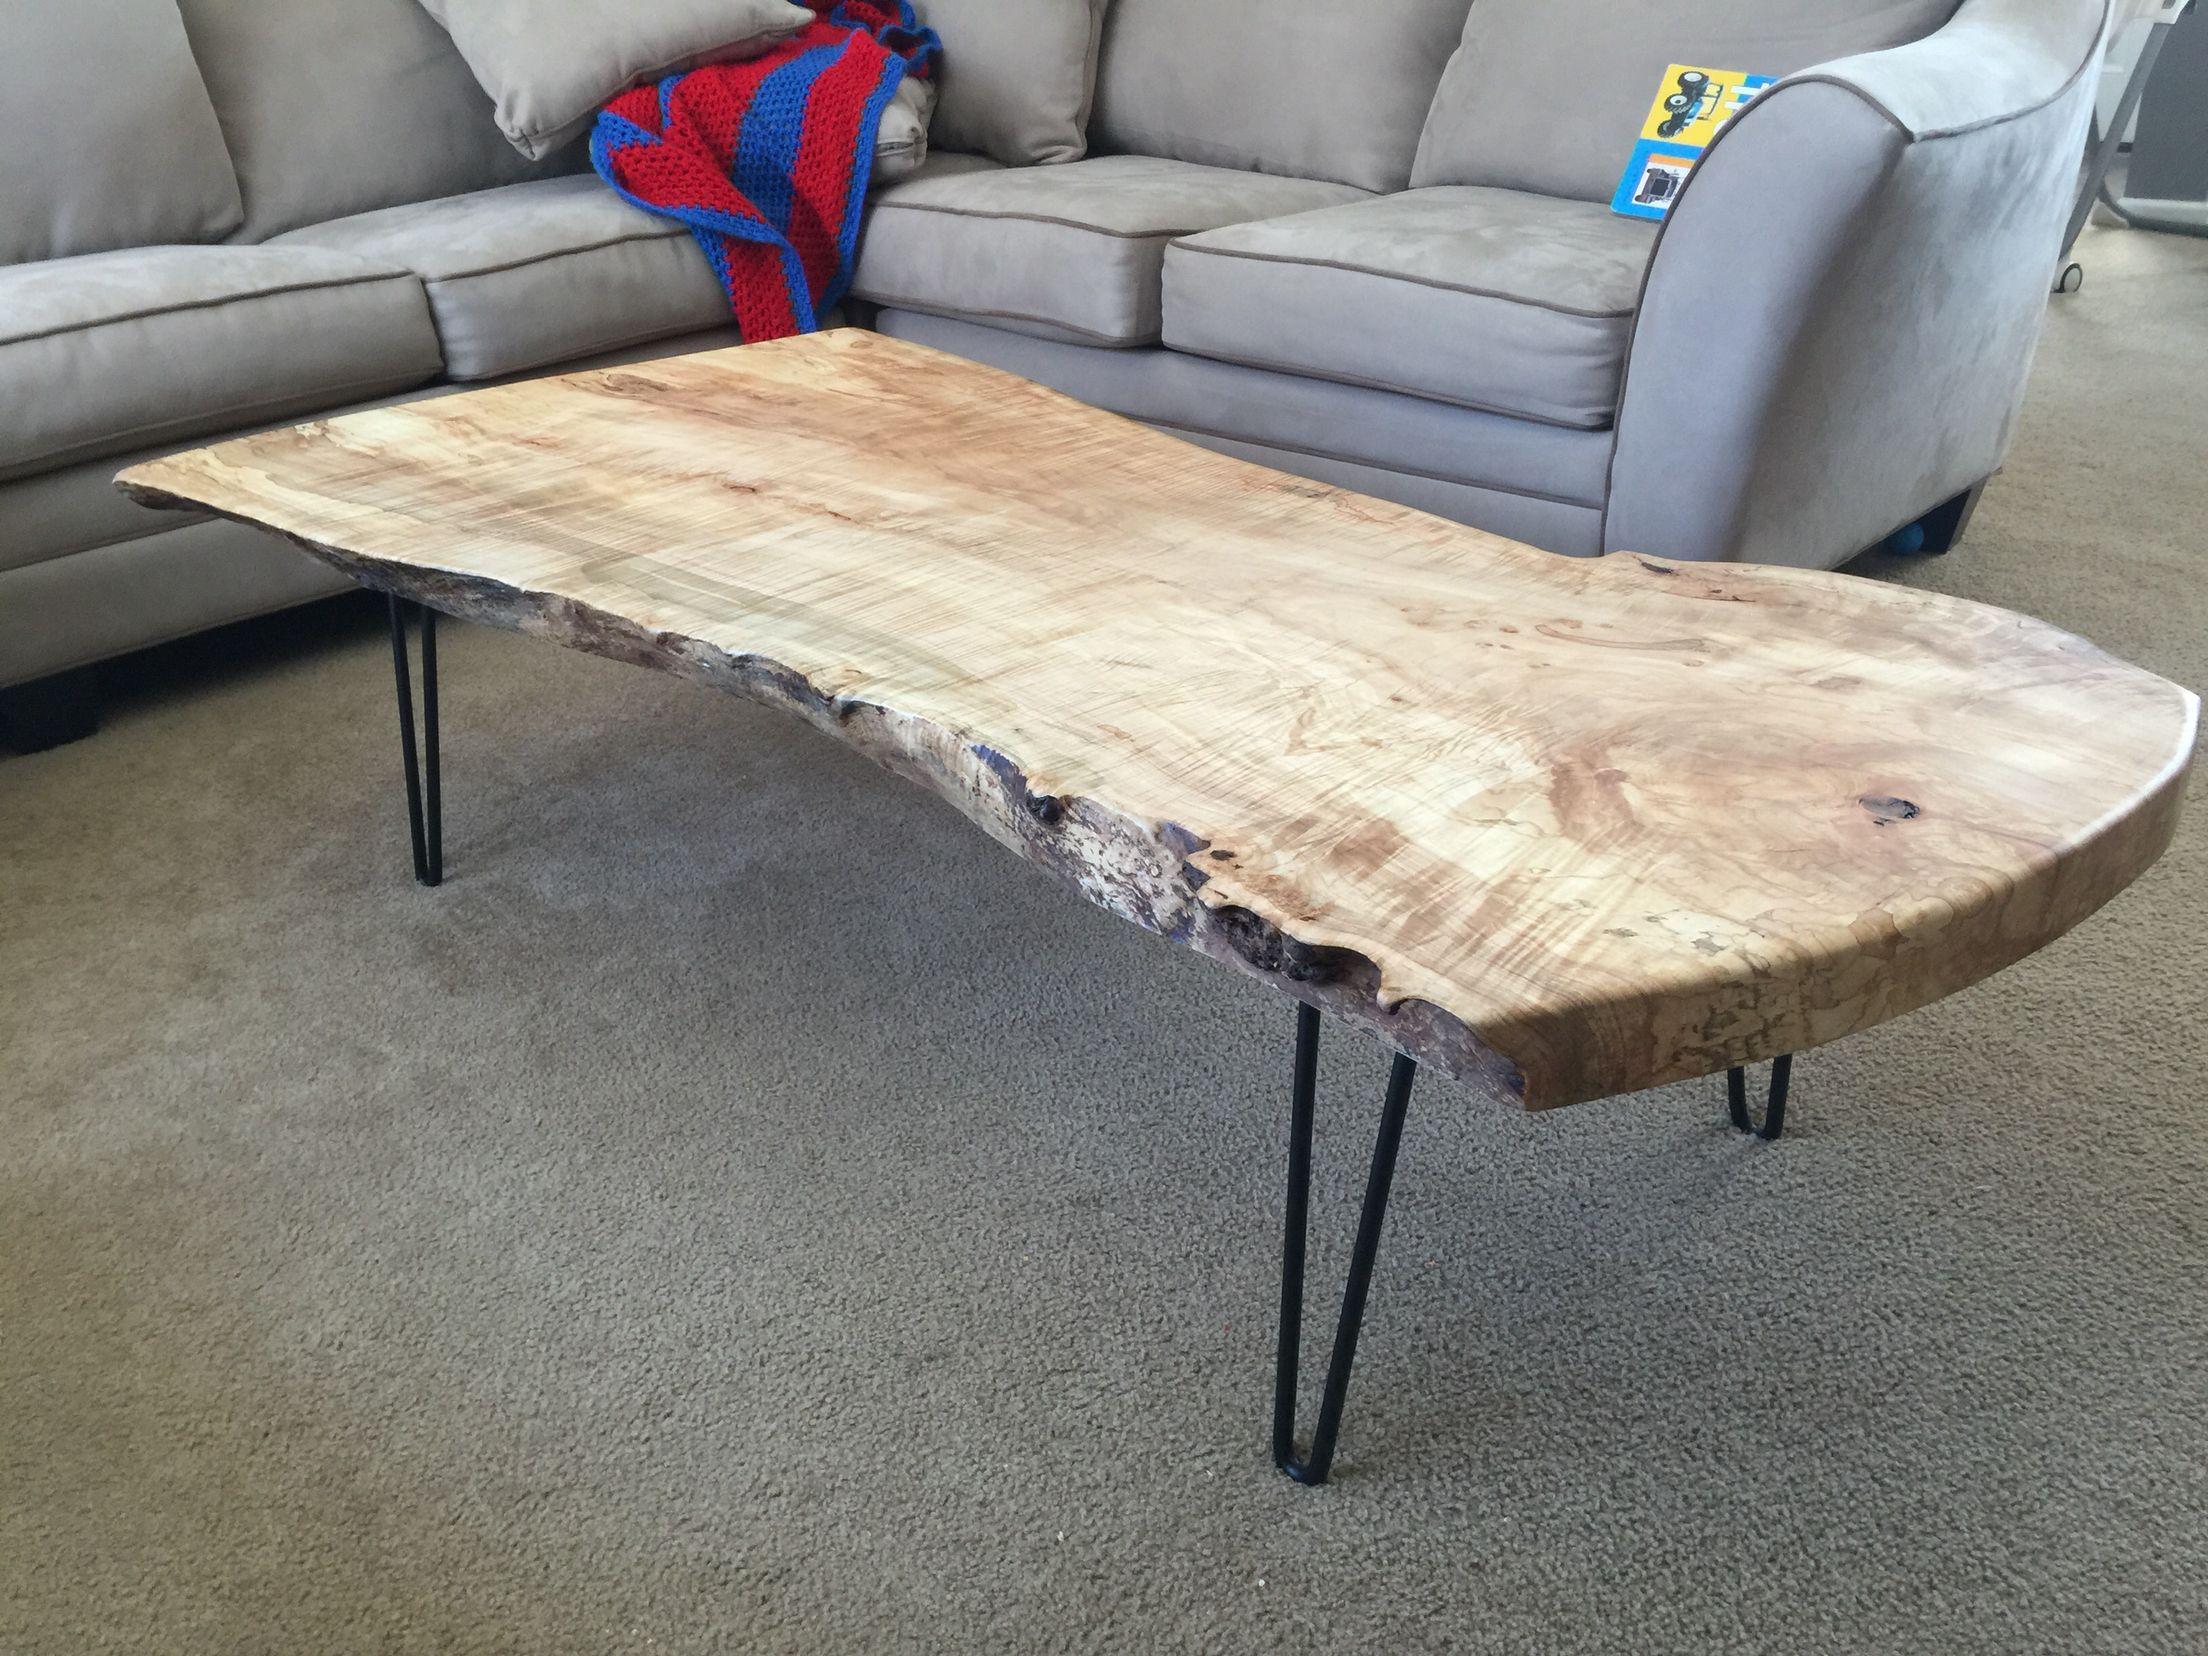 Curly Maple Coffee Table With Hair Pin Legs Coffee Table Live Edge Coffee Table Live Edge Furniture [ 1656 x 2208 Pixel ]